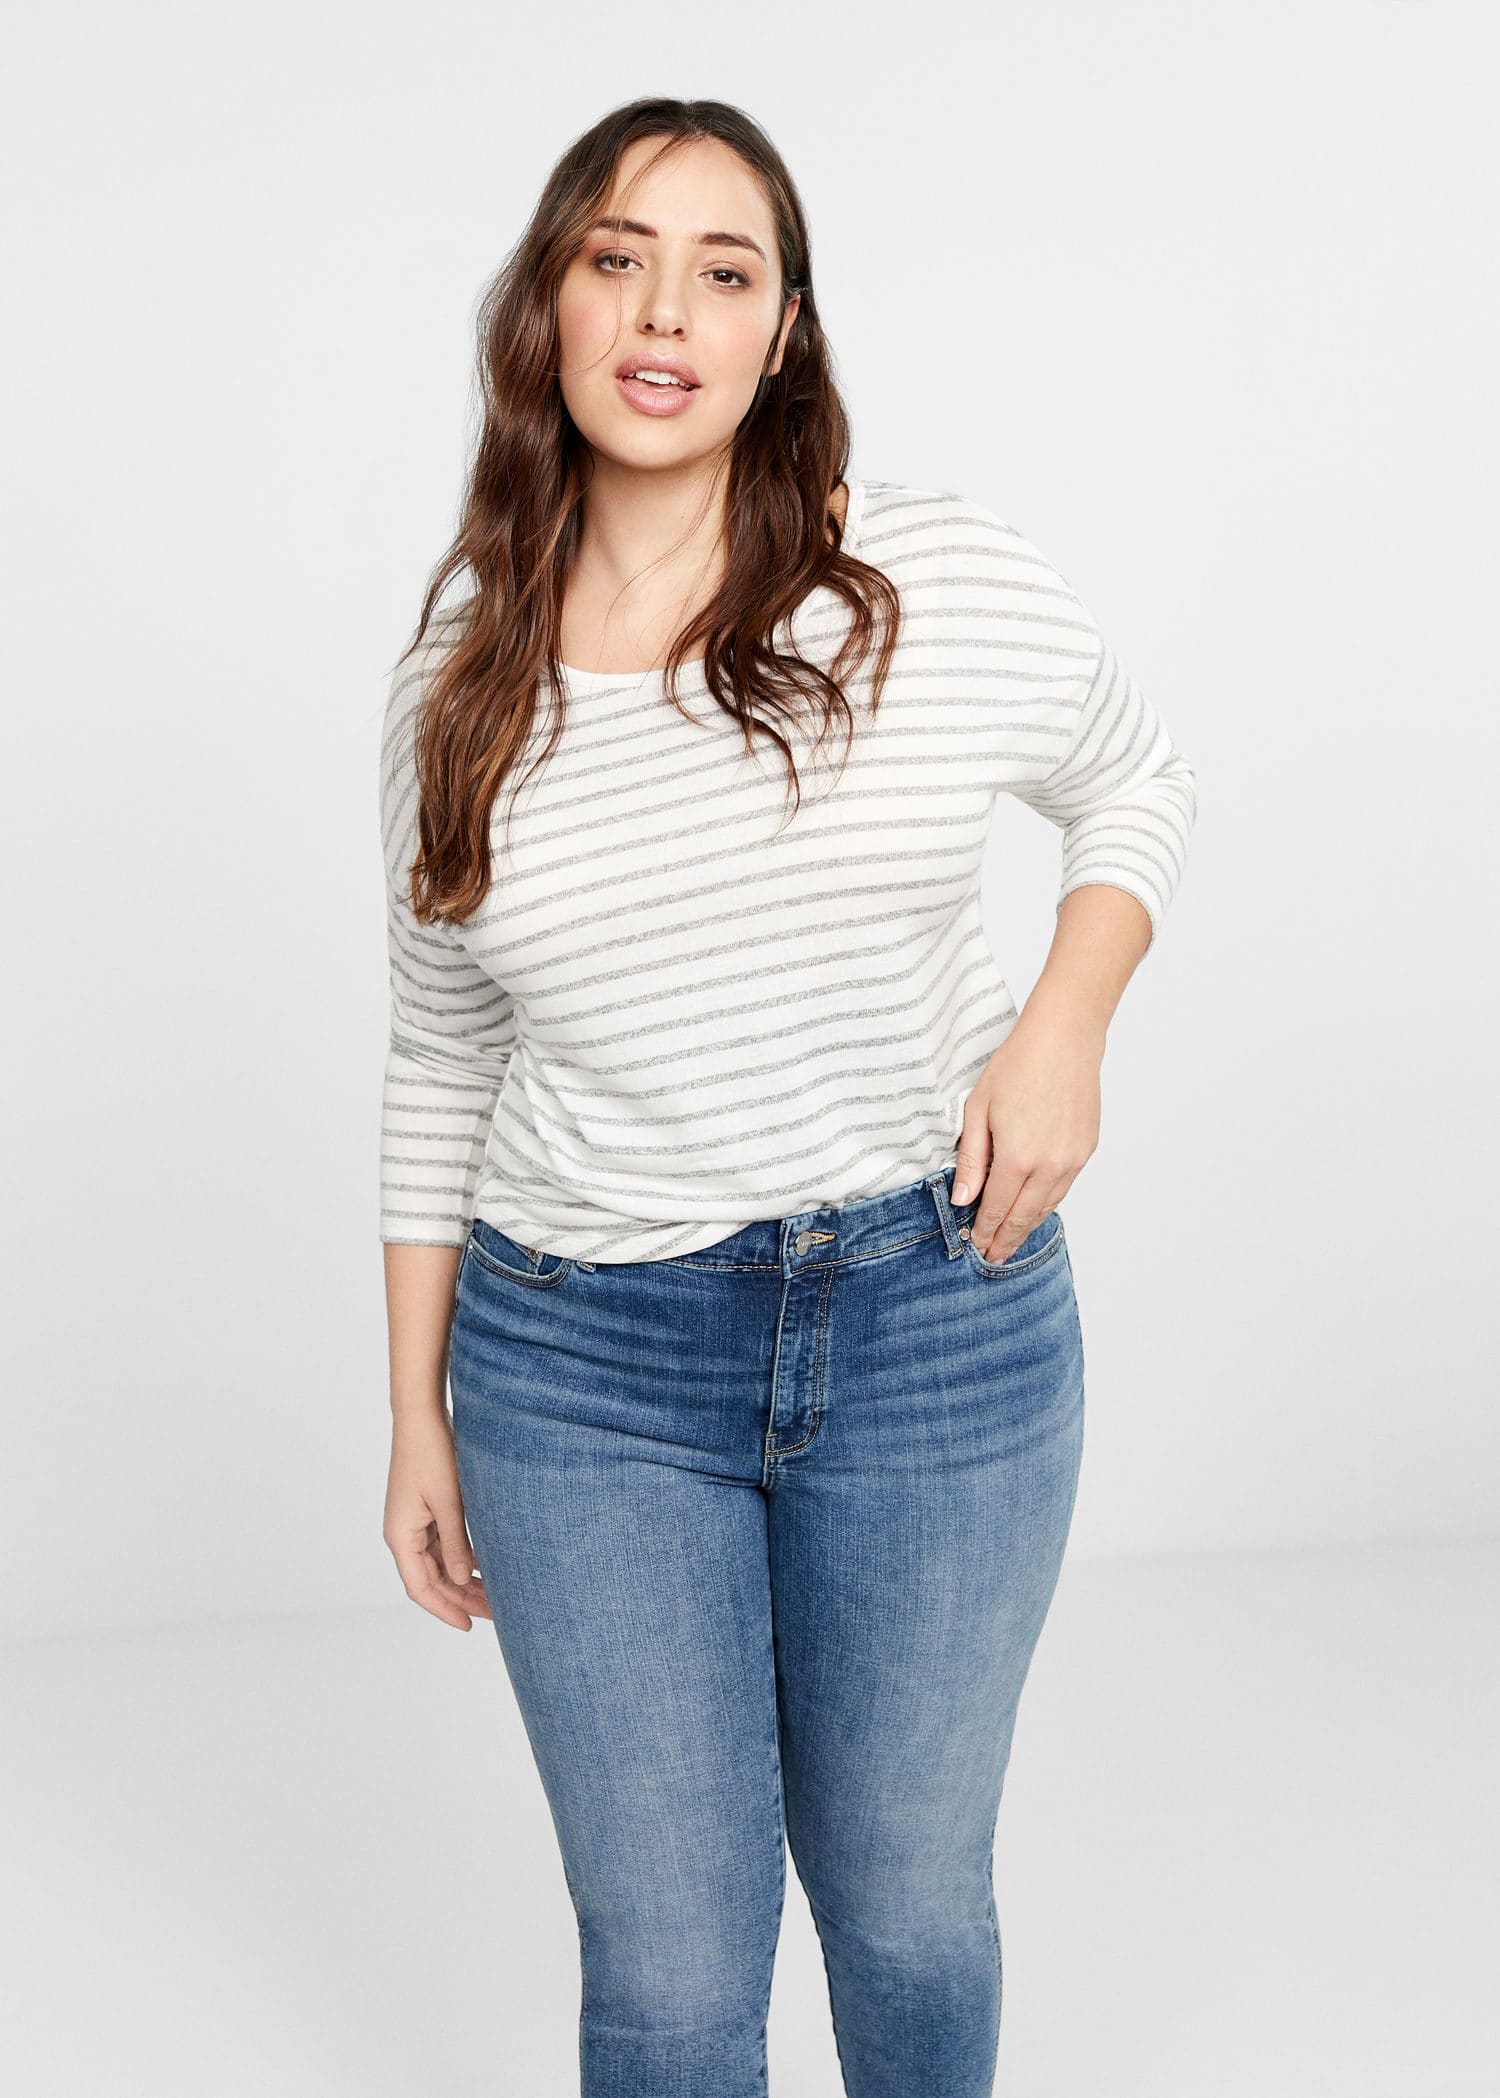 Grandes Mango Jeans Tailles 2019Violeta By France nP0kwO